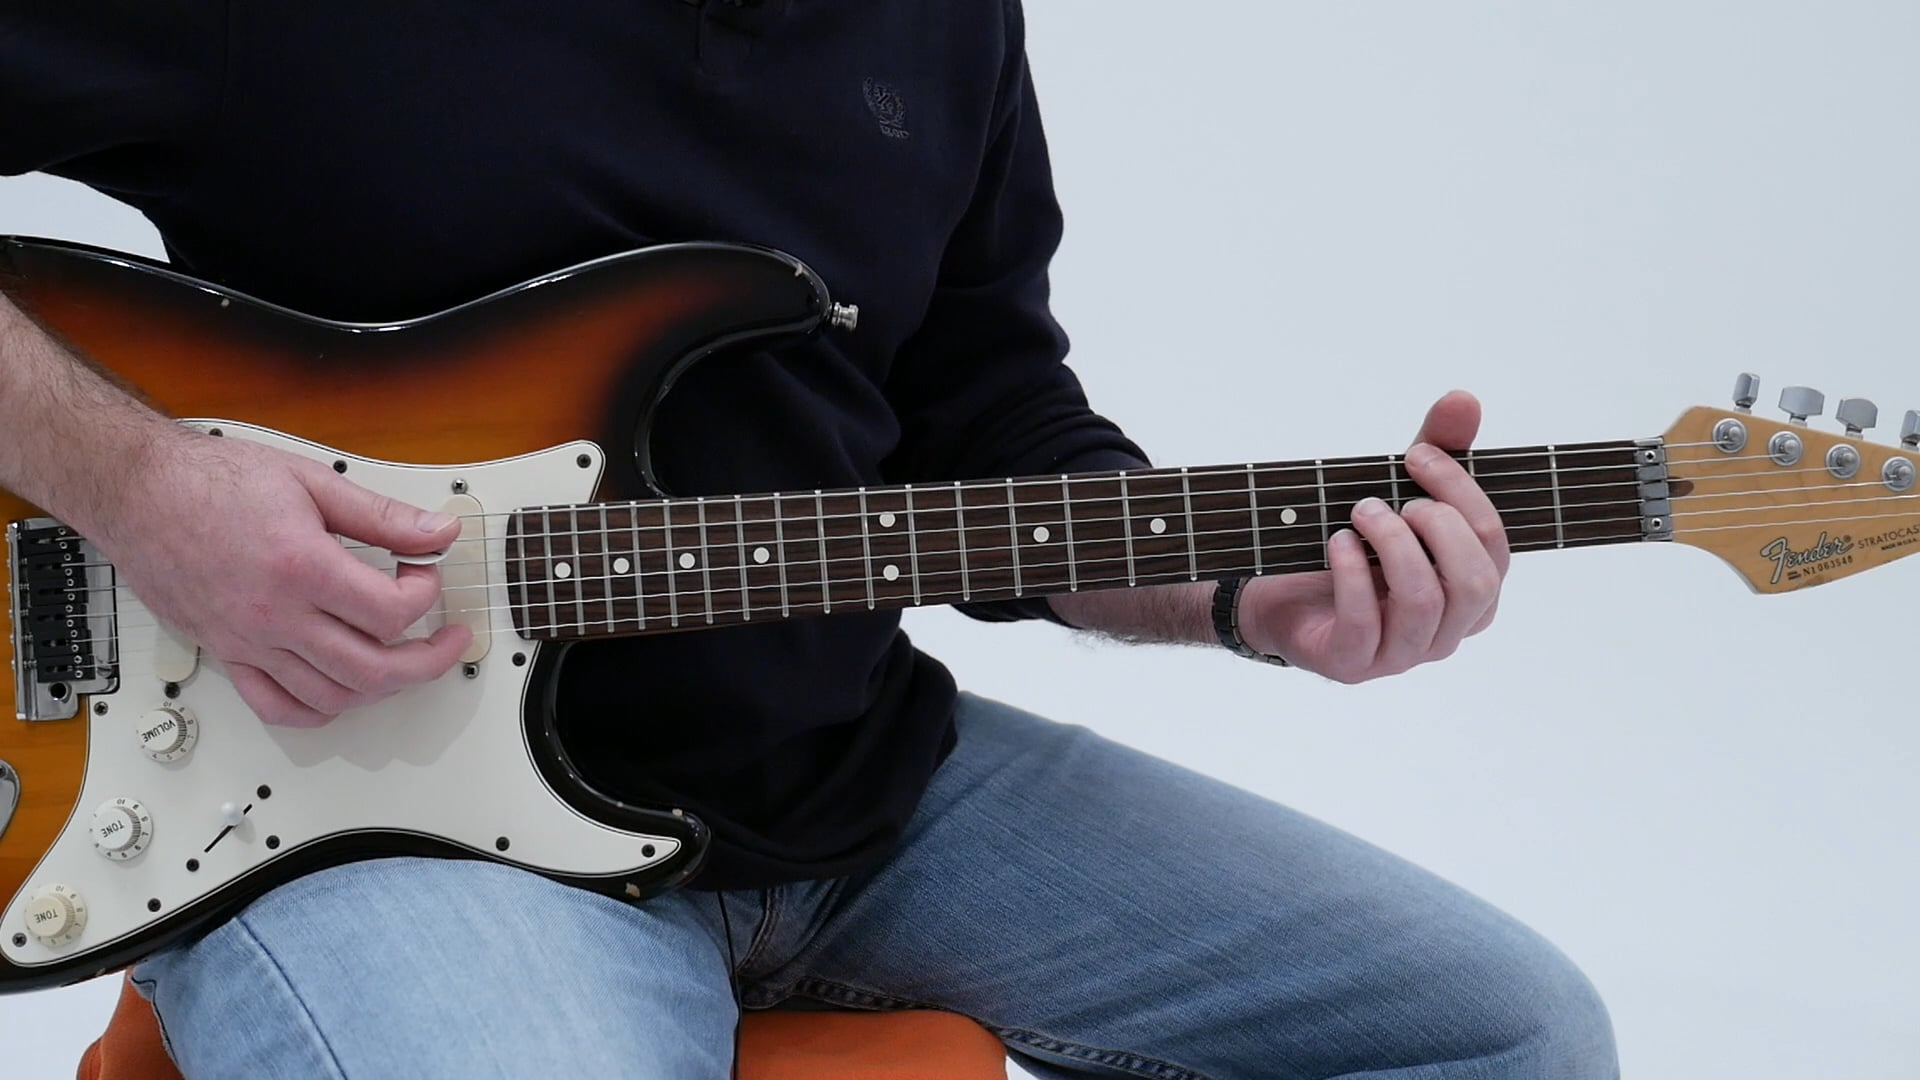 G Major 7 Chord Learn Your Chords Quickly 2 Minute Guitar Lessons